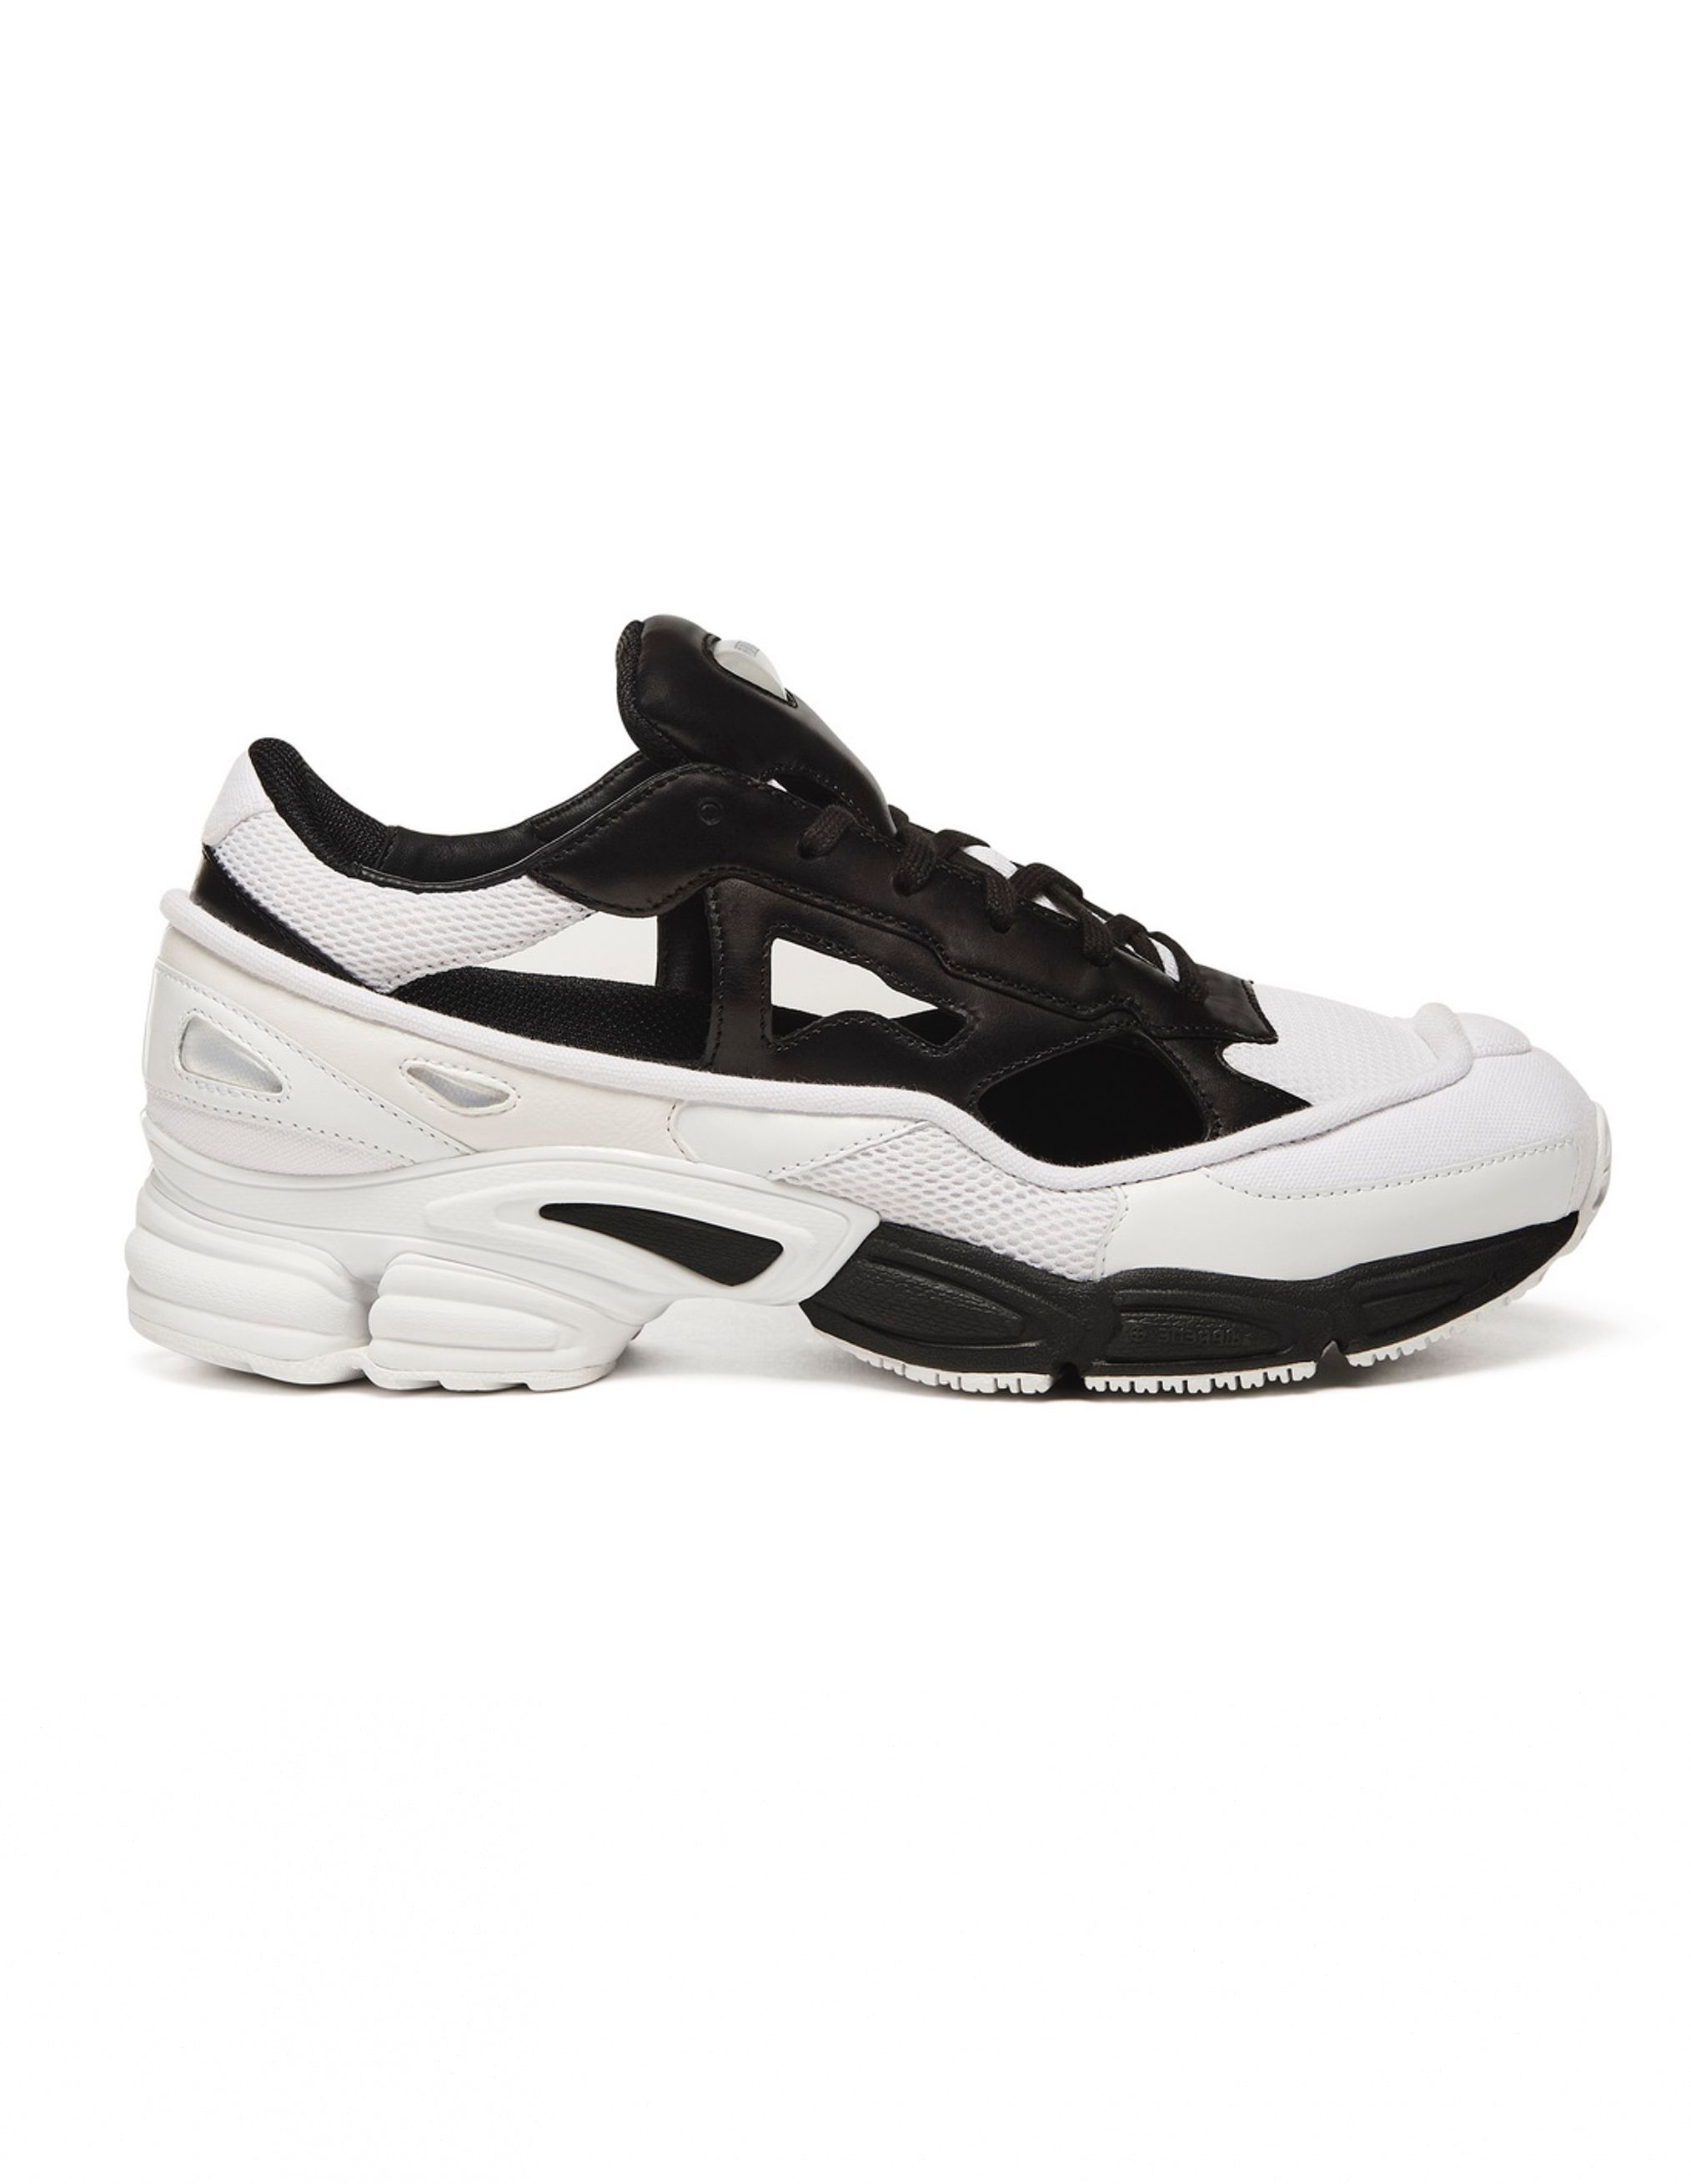 wholesale dealer 05e50 7188c RAF SIMONS REPLICANT OZWEEGO SNEAKERS.  rafsimons  shoes